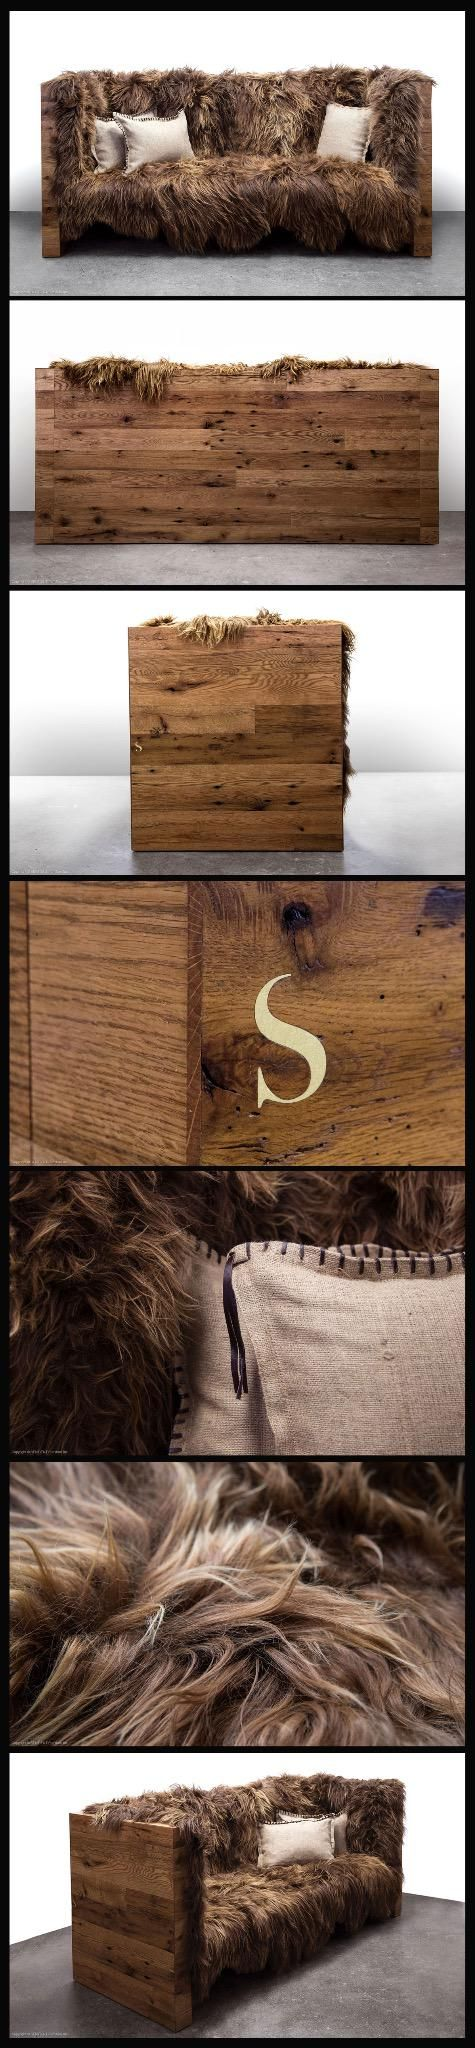 The long, Wool and Couch on Pinterest